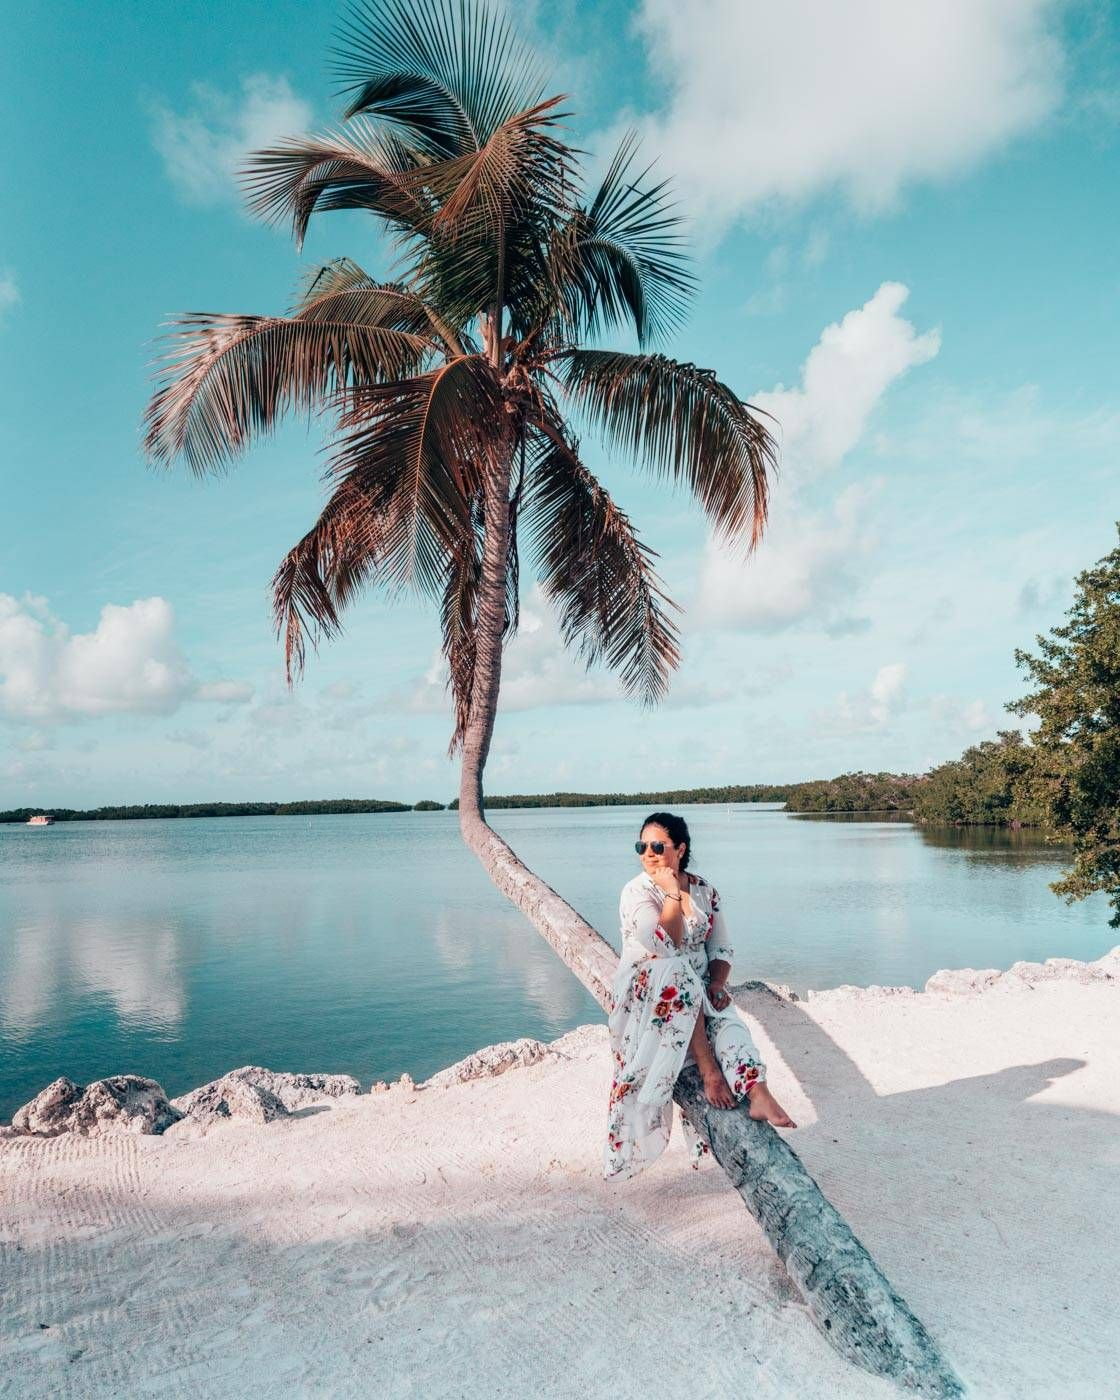 30 Things To Do In Florida The Ultimate Bucket List In 2021 Florida Travel Usa Travel Destinations Travel Bucket List Usa